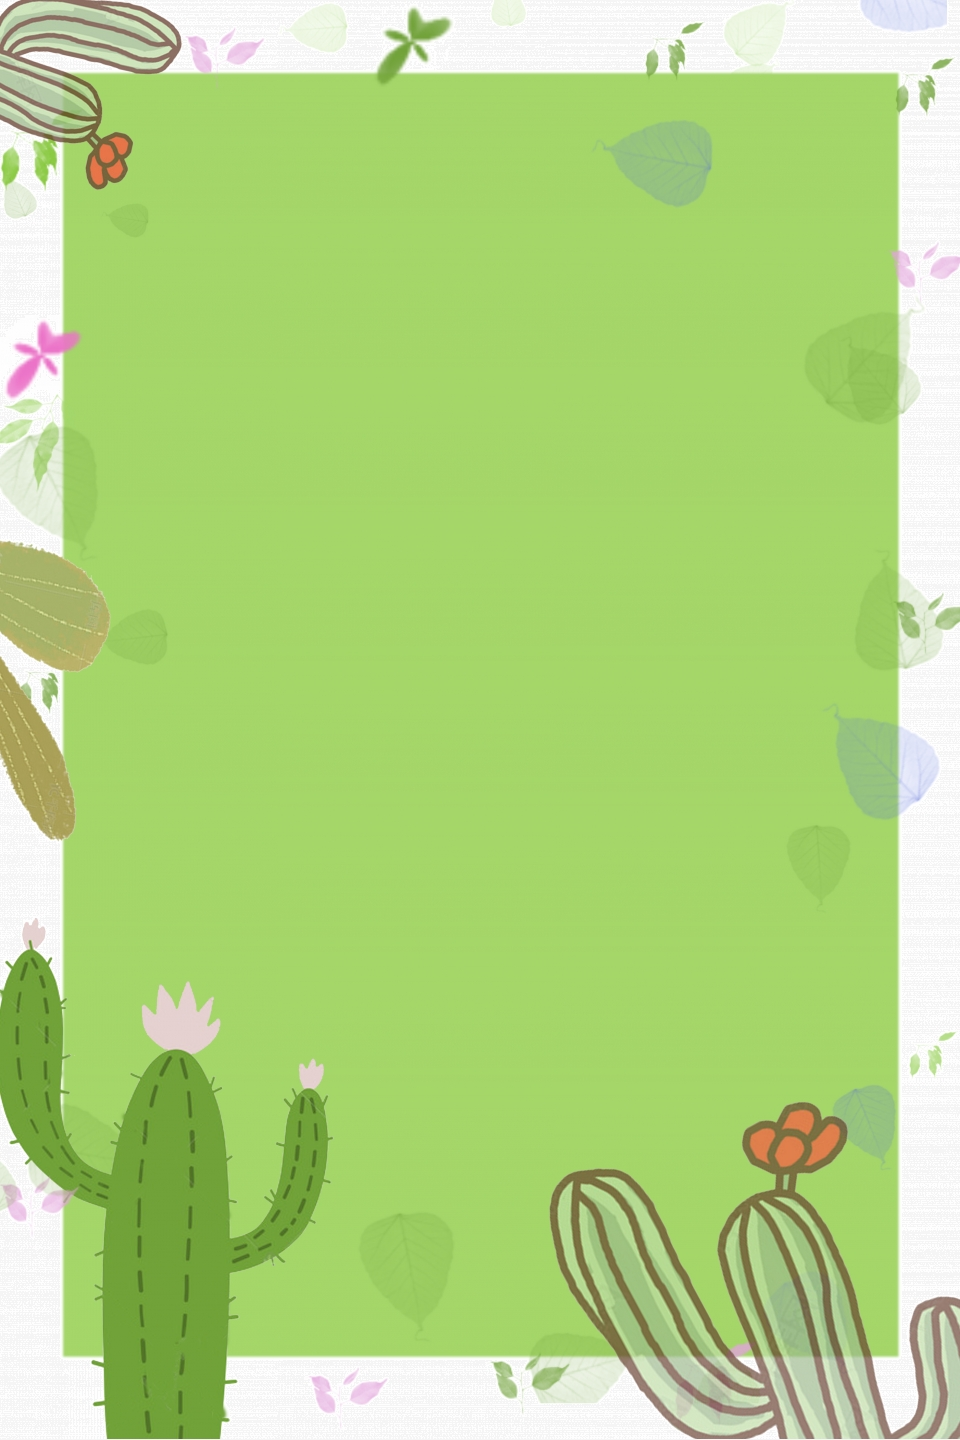 Fresh Art Simple Cactus Creative Cactus Plant Background Cactus Succulents Literary Posters Imagem De Plano De Fundo Para Download Gratuito